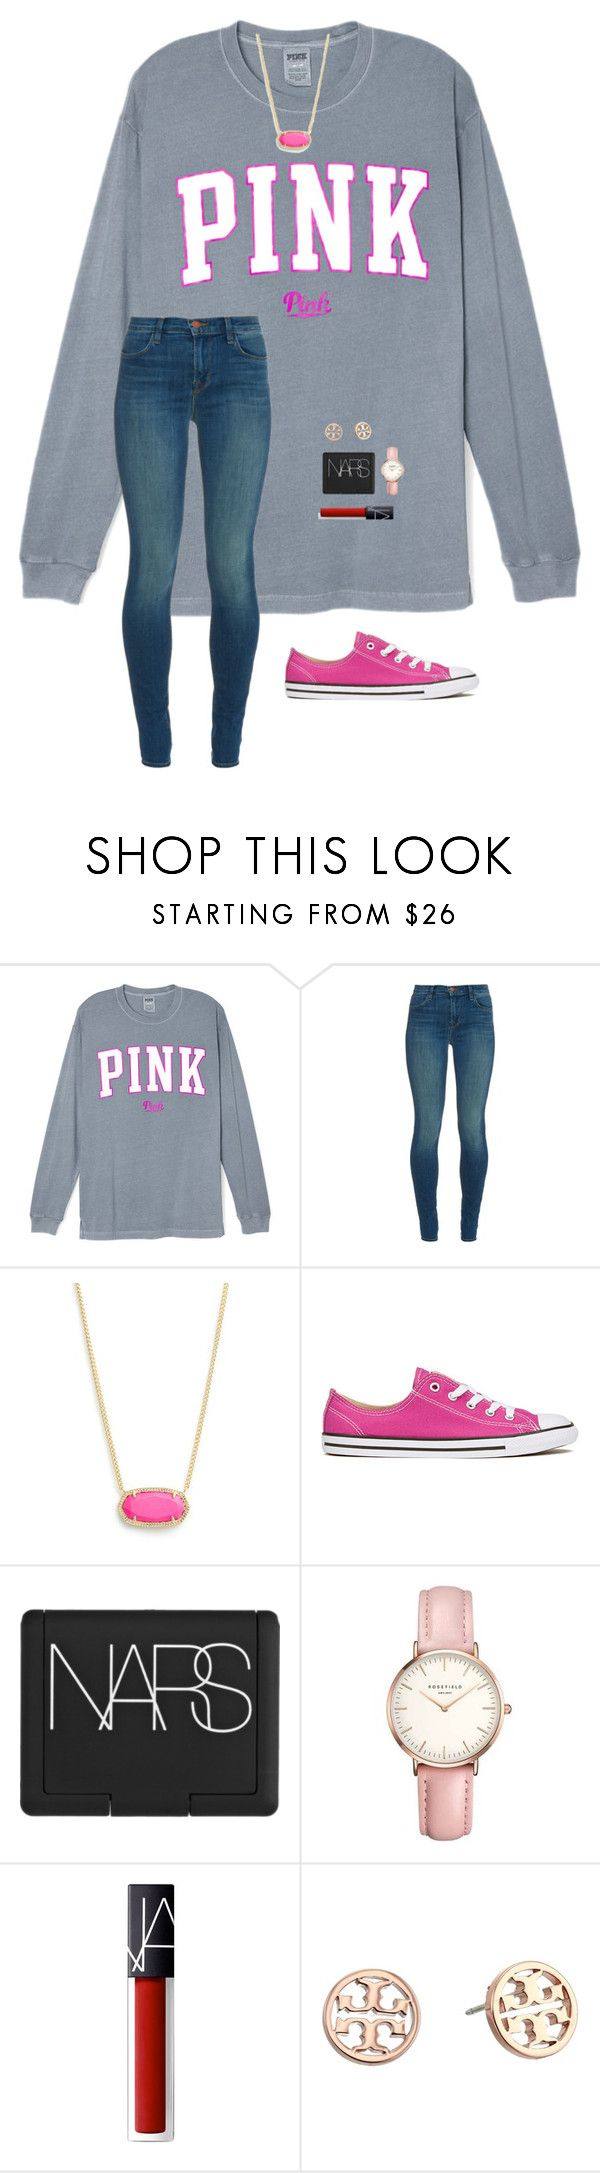 """""""Qotd #1"""" by a-devo ❤ liked on Polyvore featuring J Brand, Kendra Scott, Converse, NARS Cosmetics, Topshop and Tory Burch"""